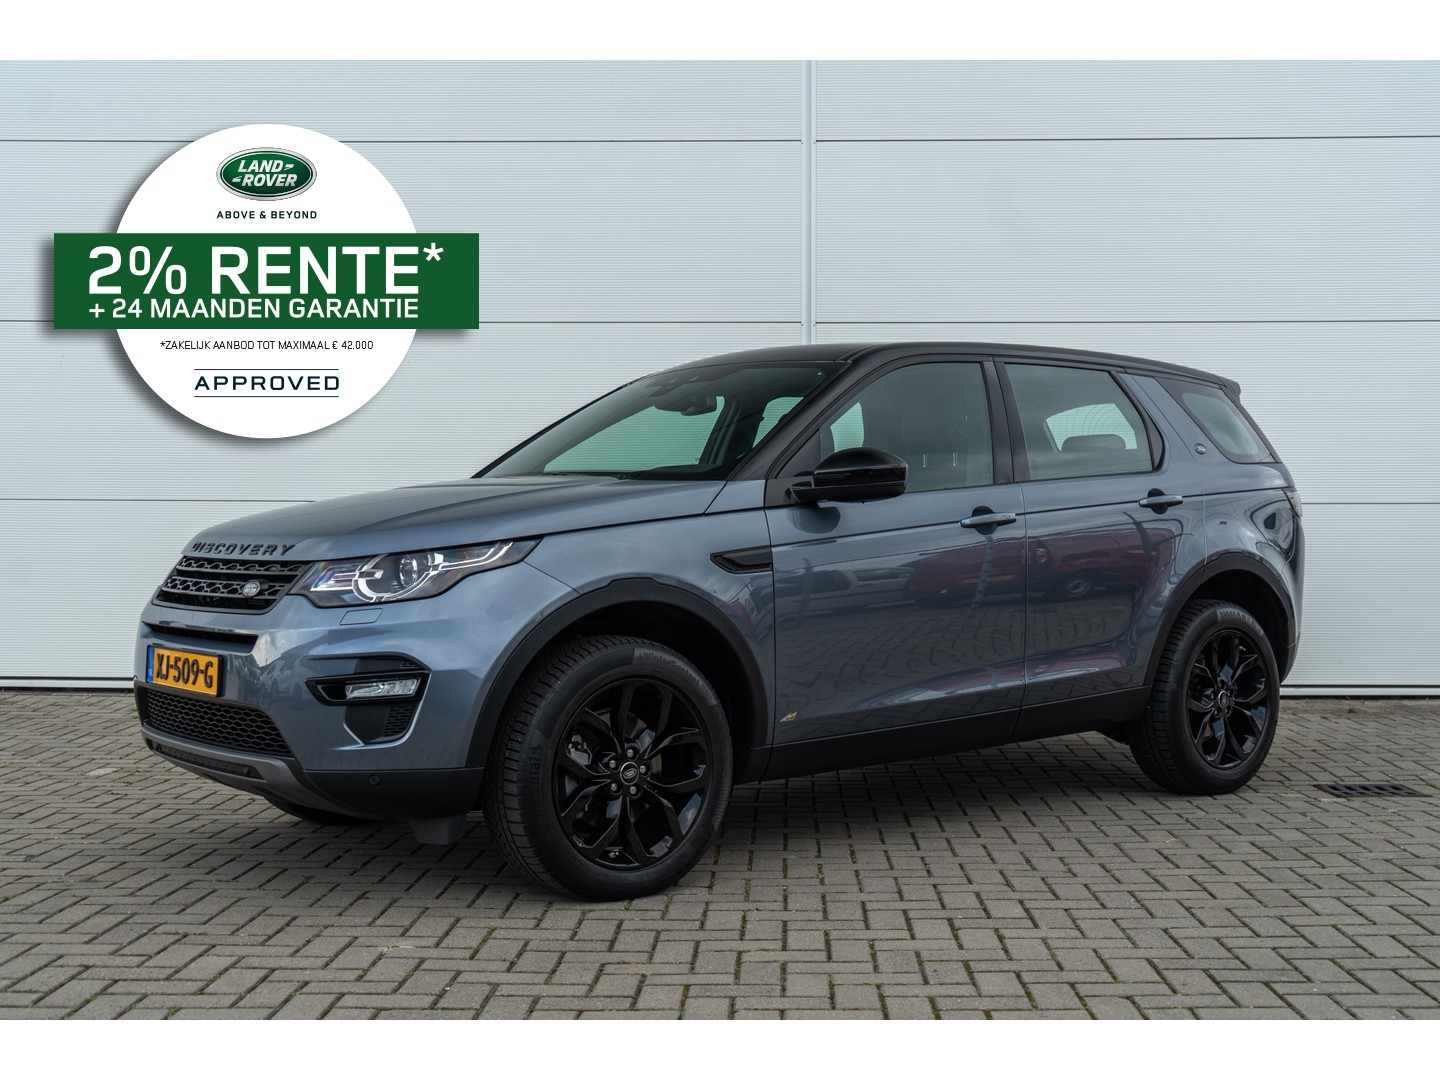 Land rover Discovery sport 2.0 si4 240pk 4wd aut urban series se dynamic - approved label - black pack